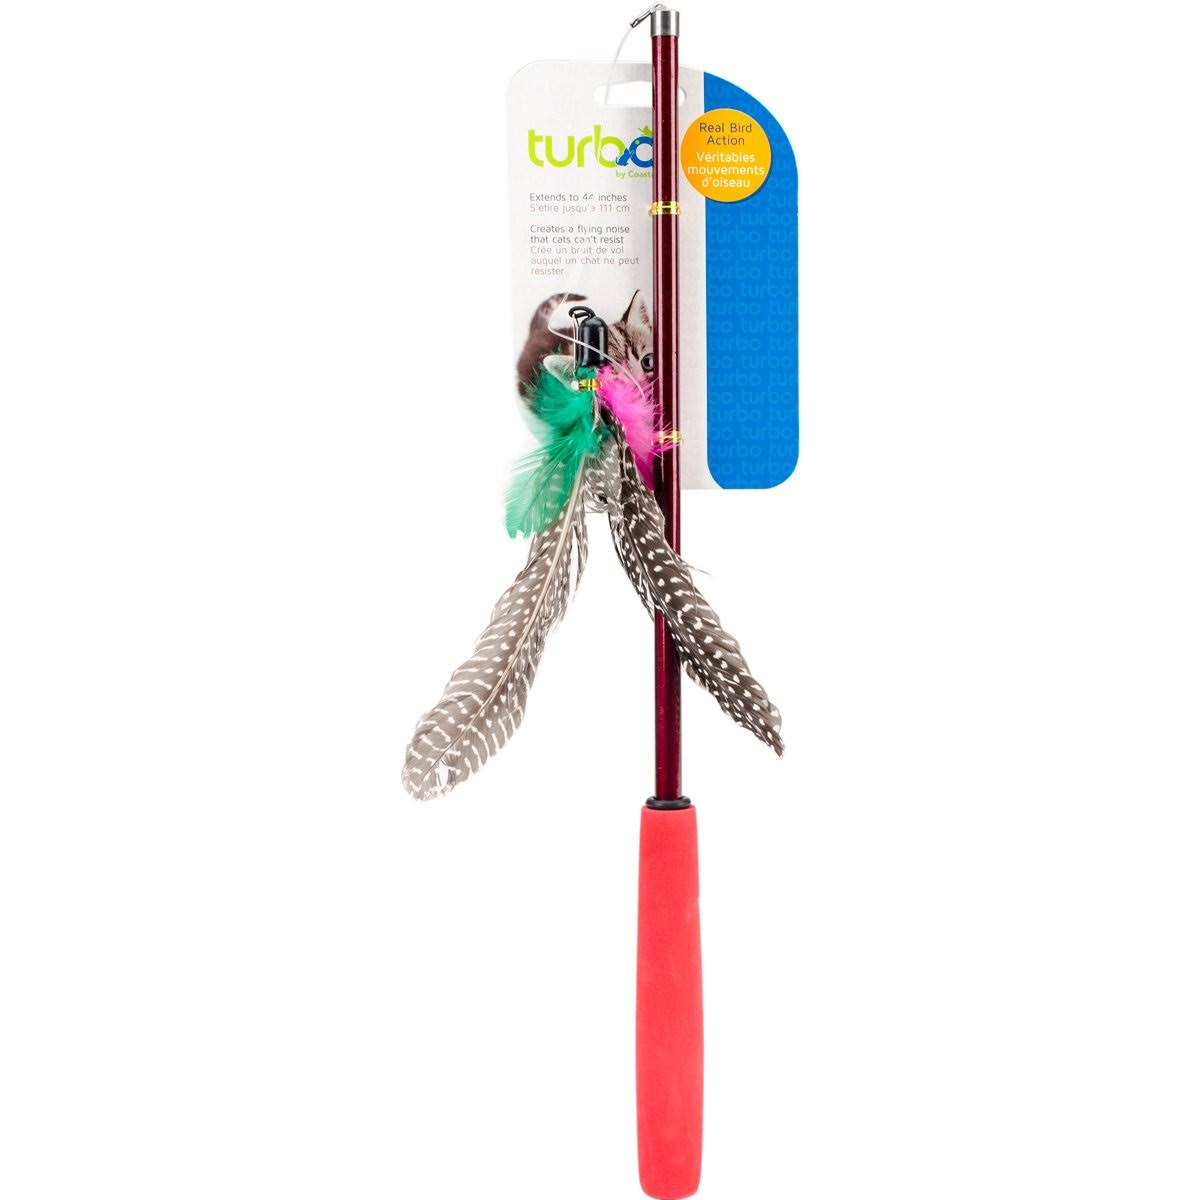 Turbo Telescoping Flying Teaser Cat Toy - 2ct